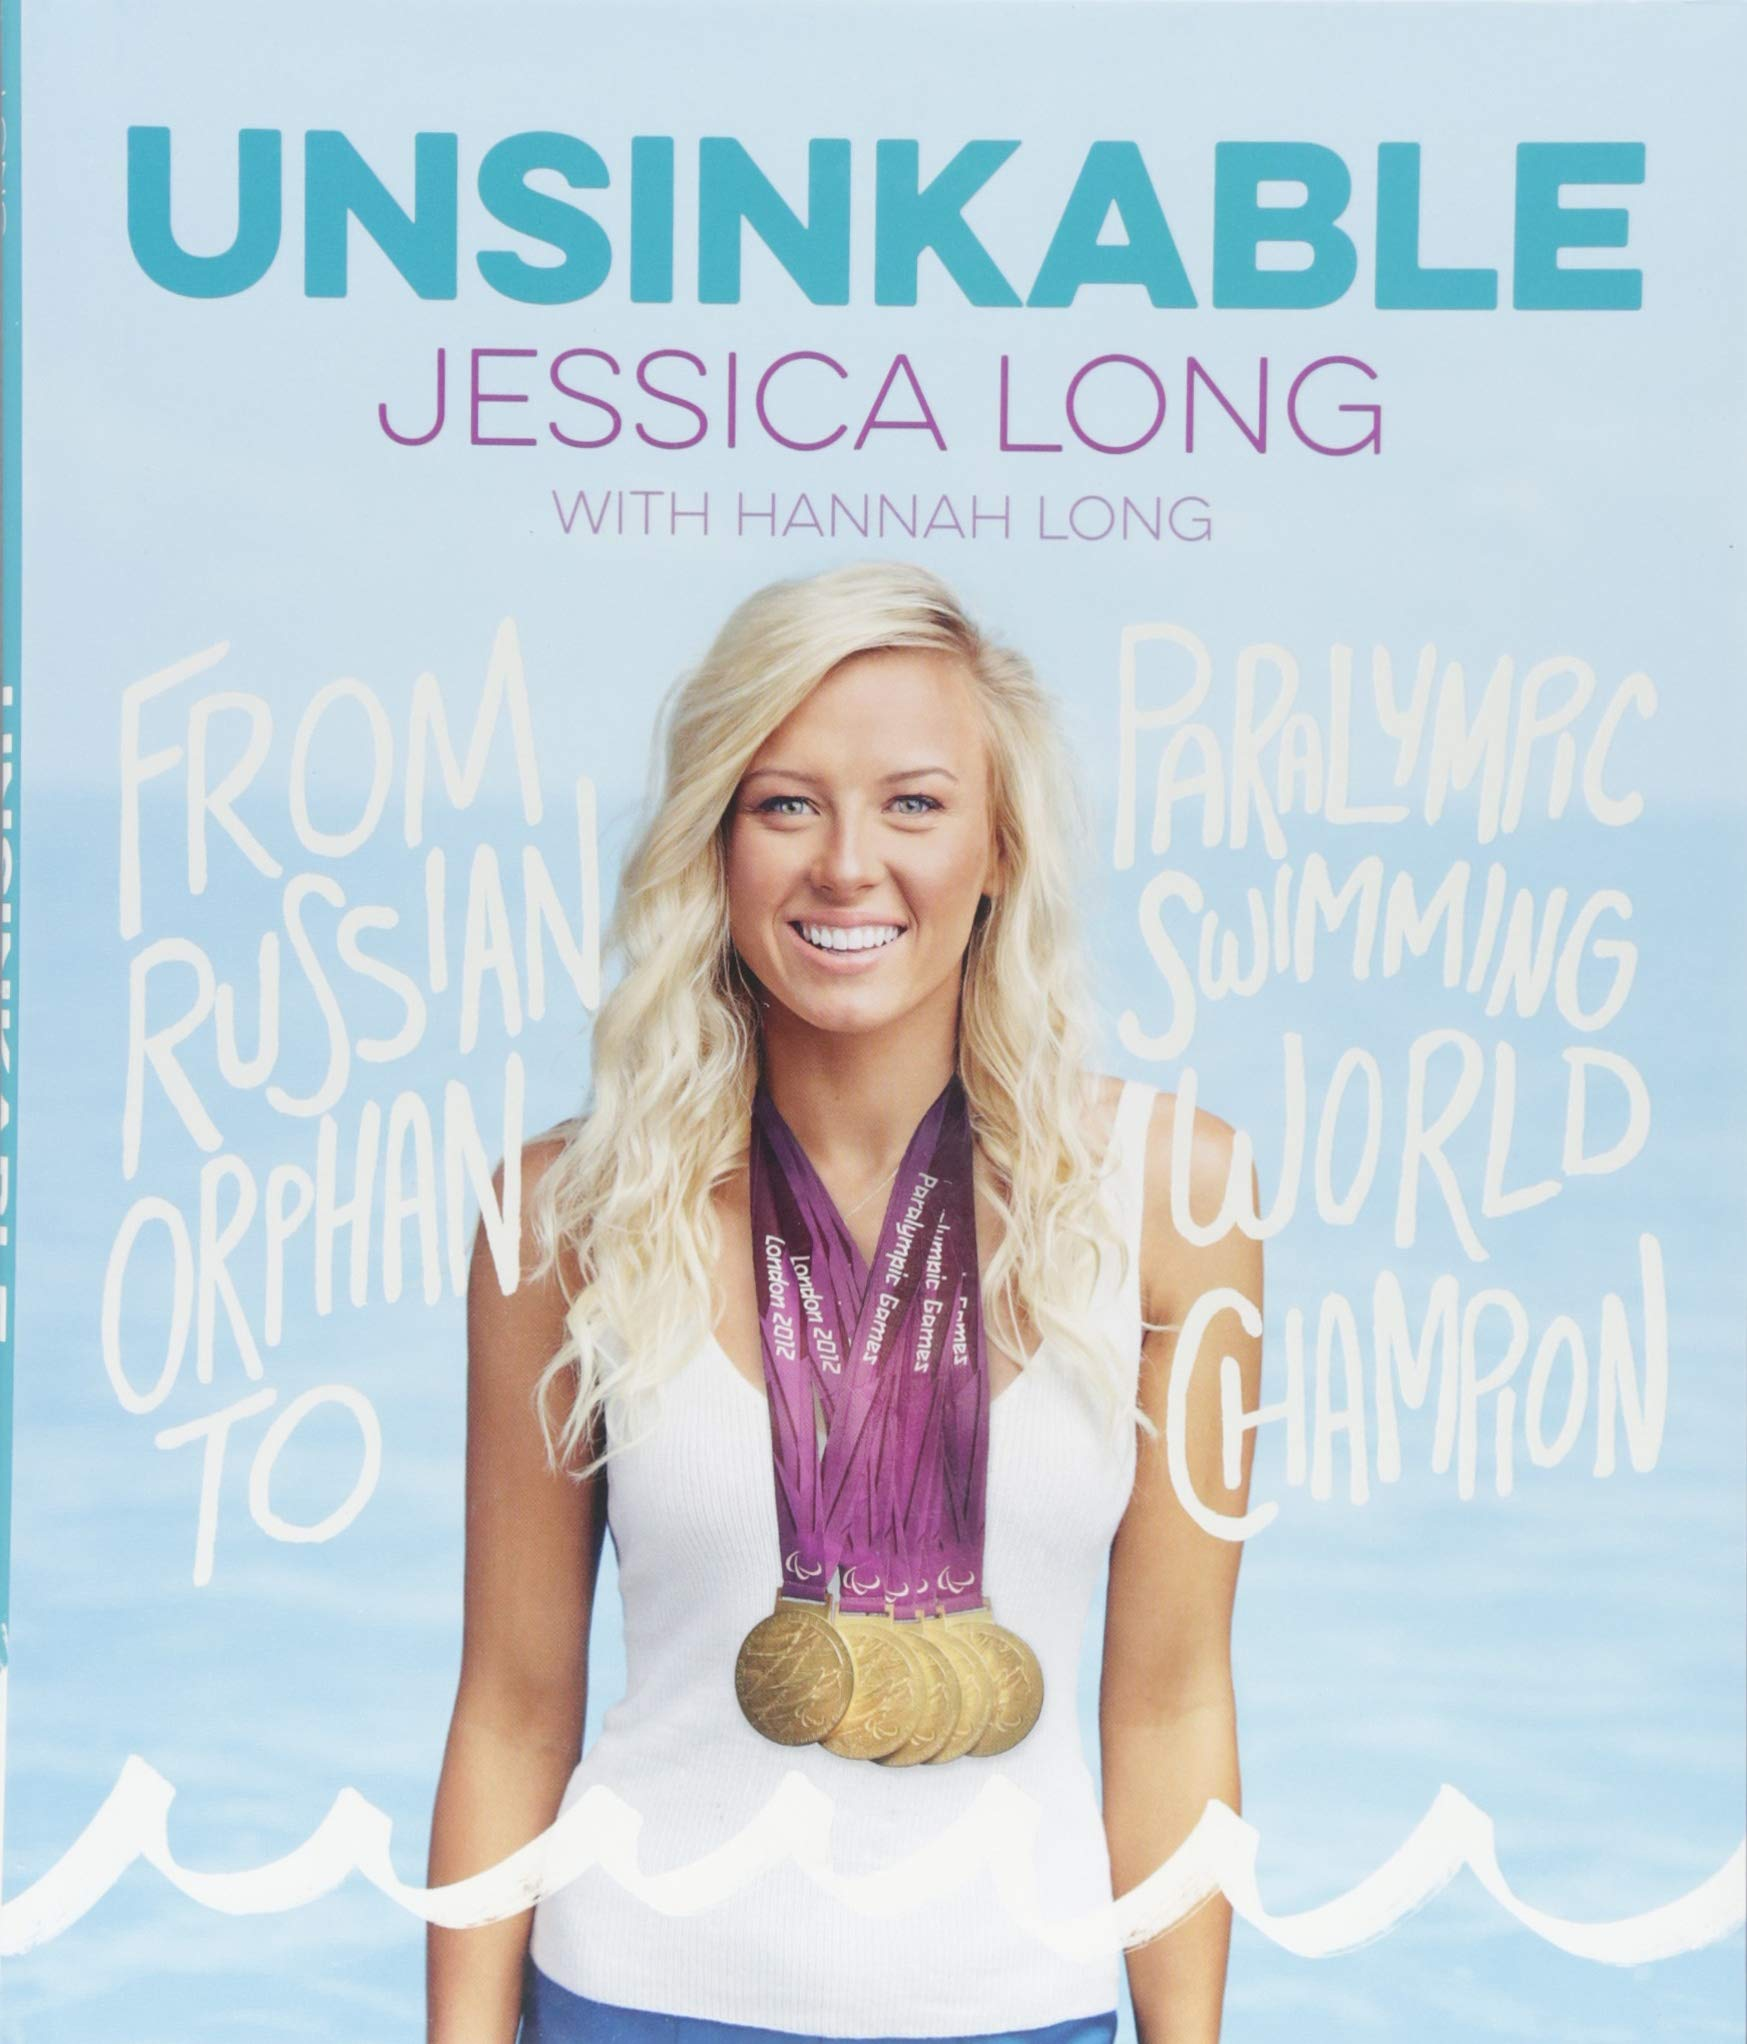 Download Unsinkable: From Russian Orphan to Paralympic Swimming World Champion PDF